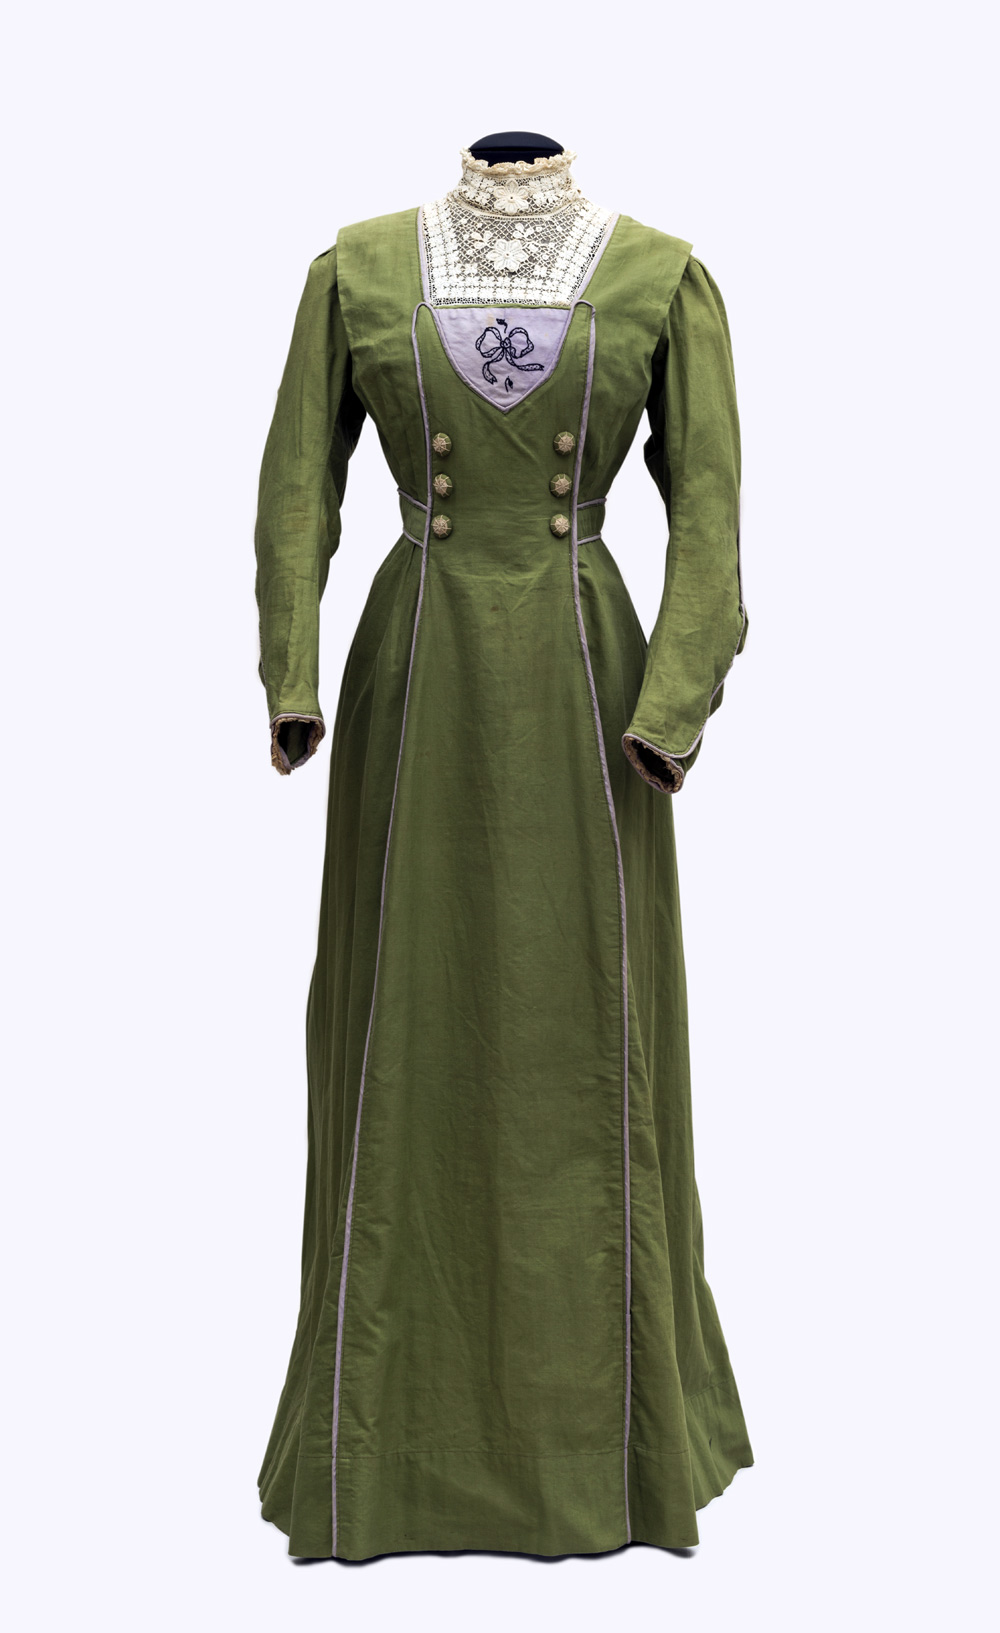 Day Dress Of A Suffragette Sympathizer, England, 1905 09